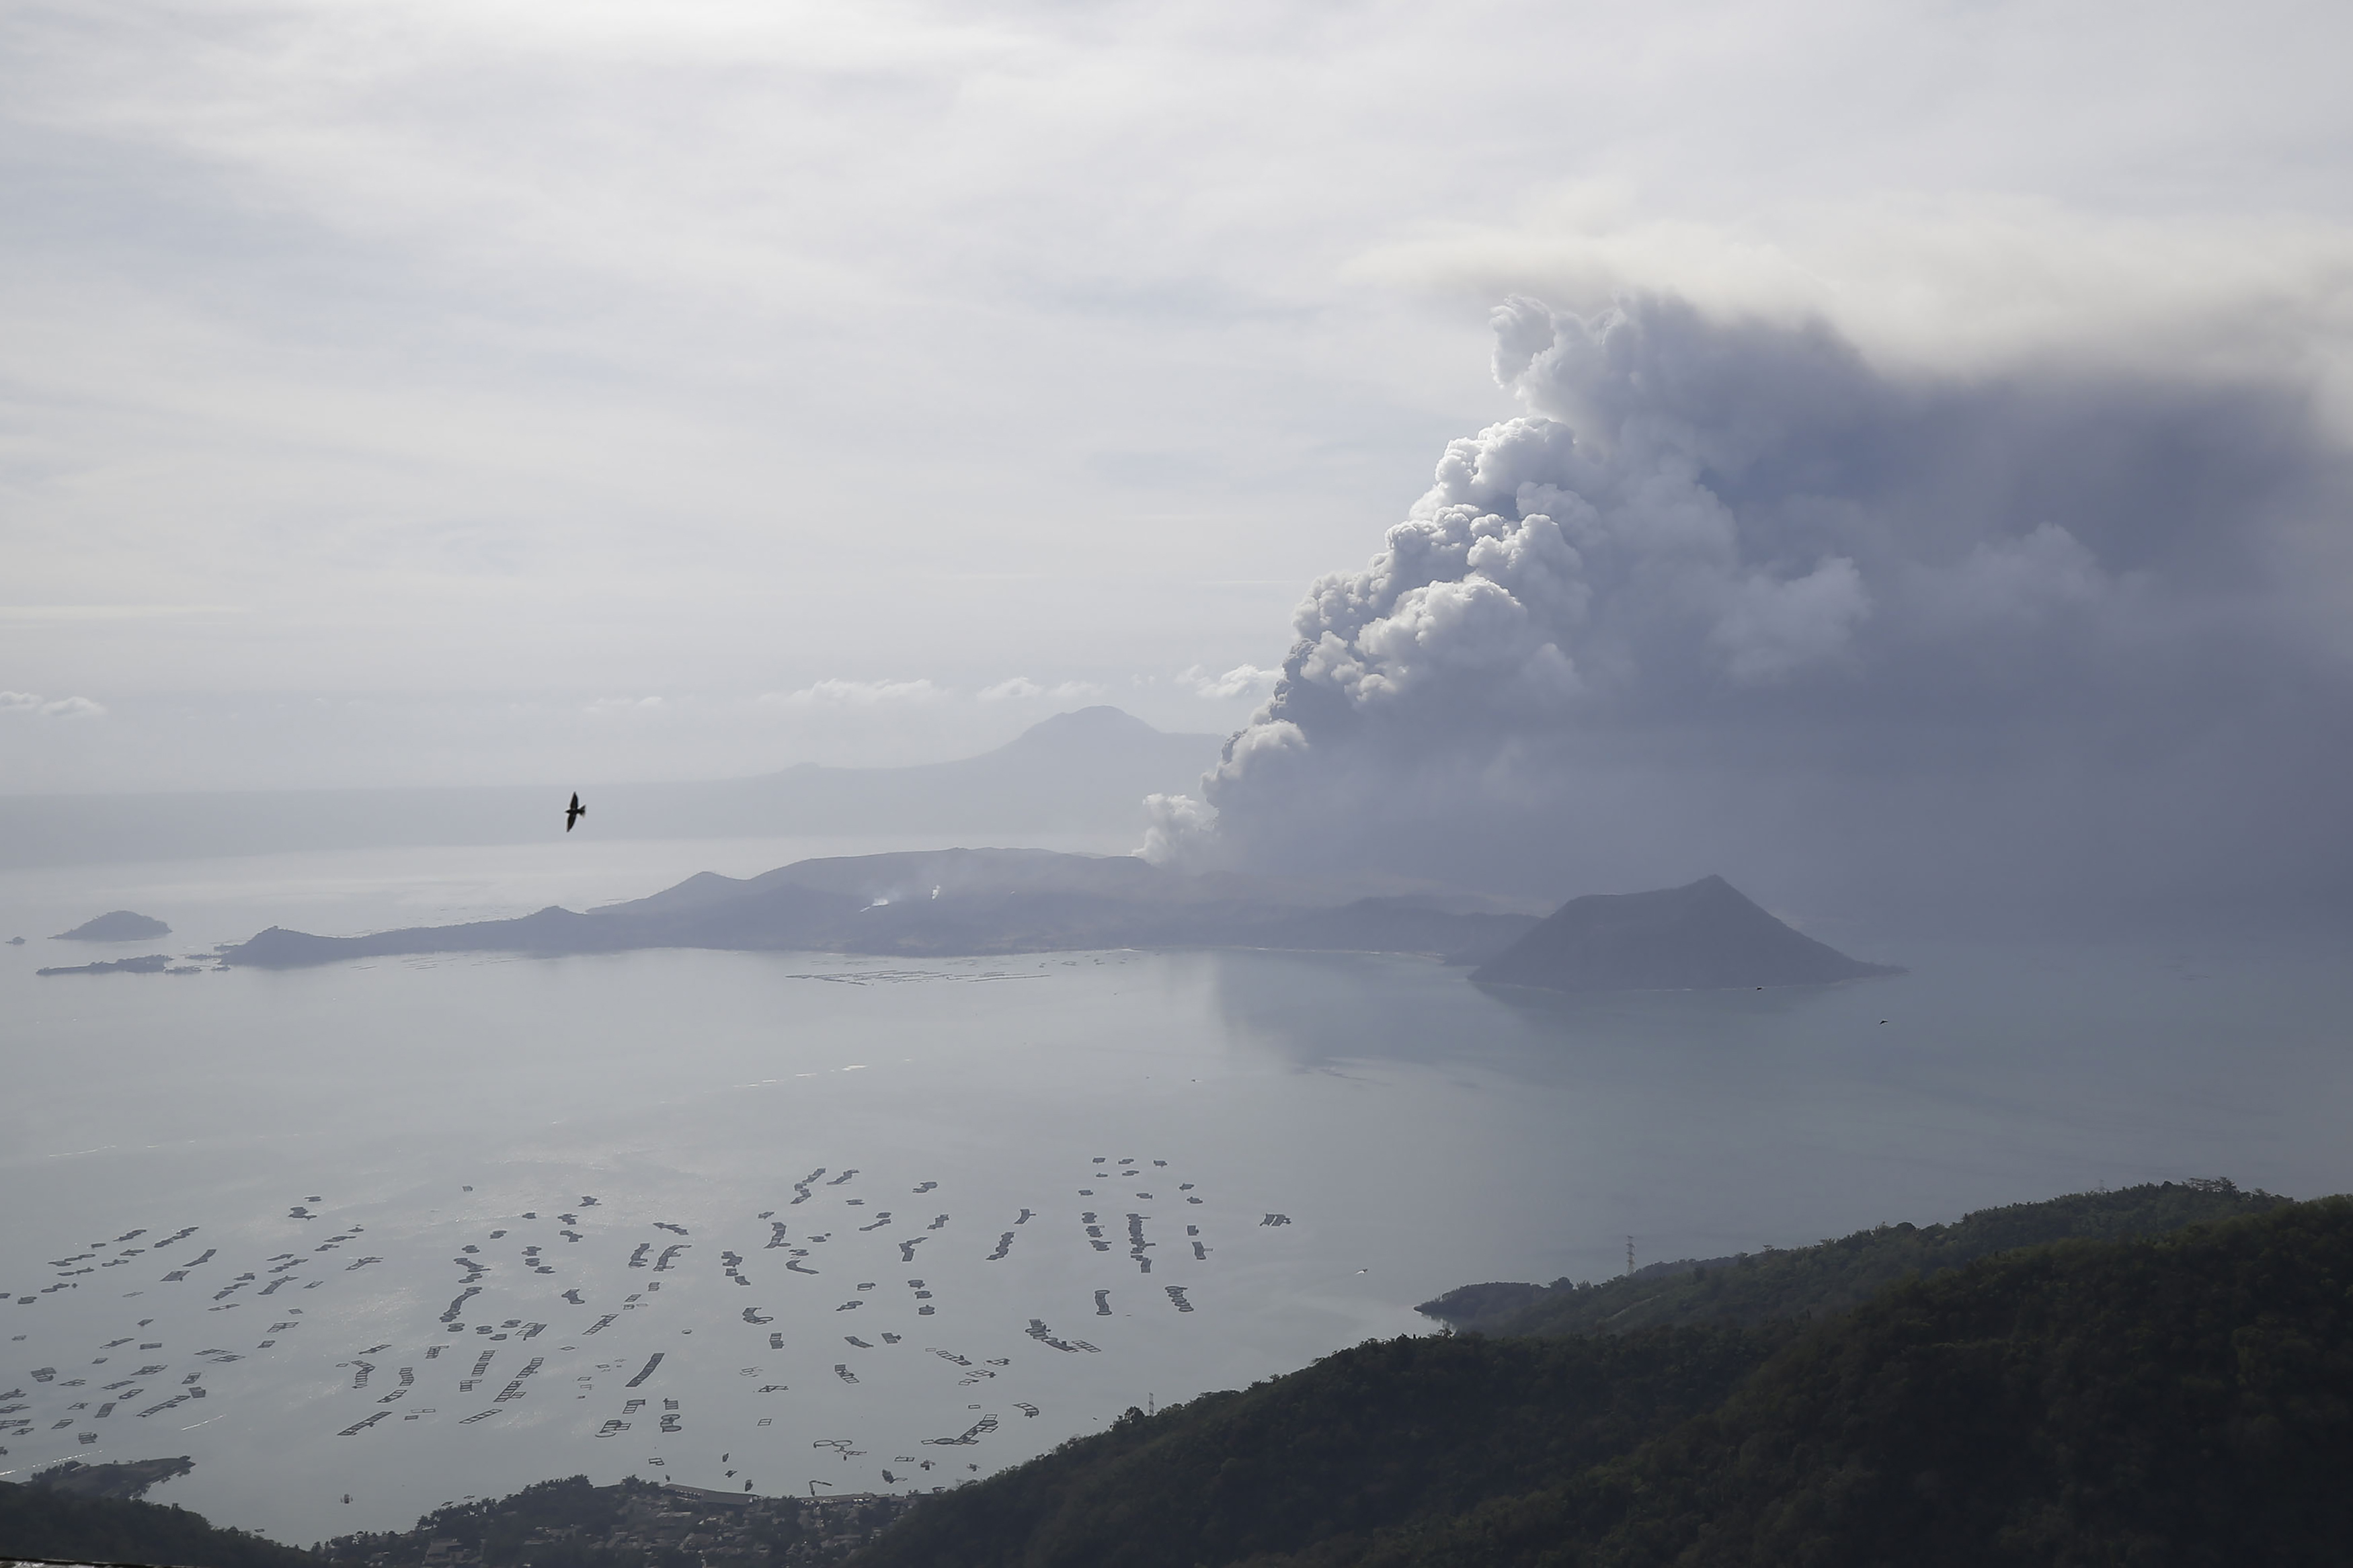 Taal Volcano continues to spew ash on Monday Jan. 13, 2020, in Tagaytay, Cavite province, south of Manila, Philippines. Red-hot lava gushed out of the Philippine volcano Monday after a sudden eruption of ash and steam that forced villagers to flee en masse and shut down Manila's international airport, offices and schools.